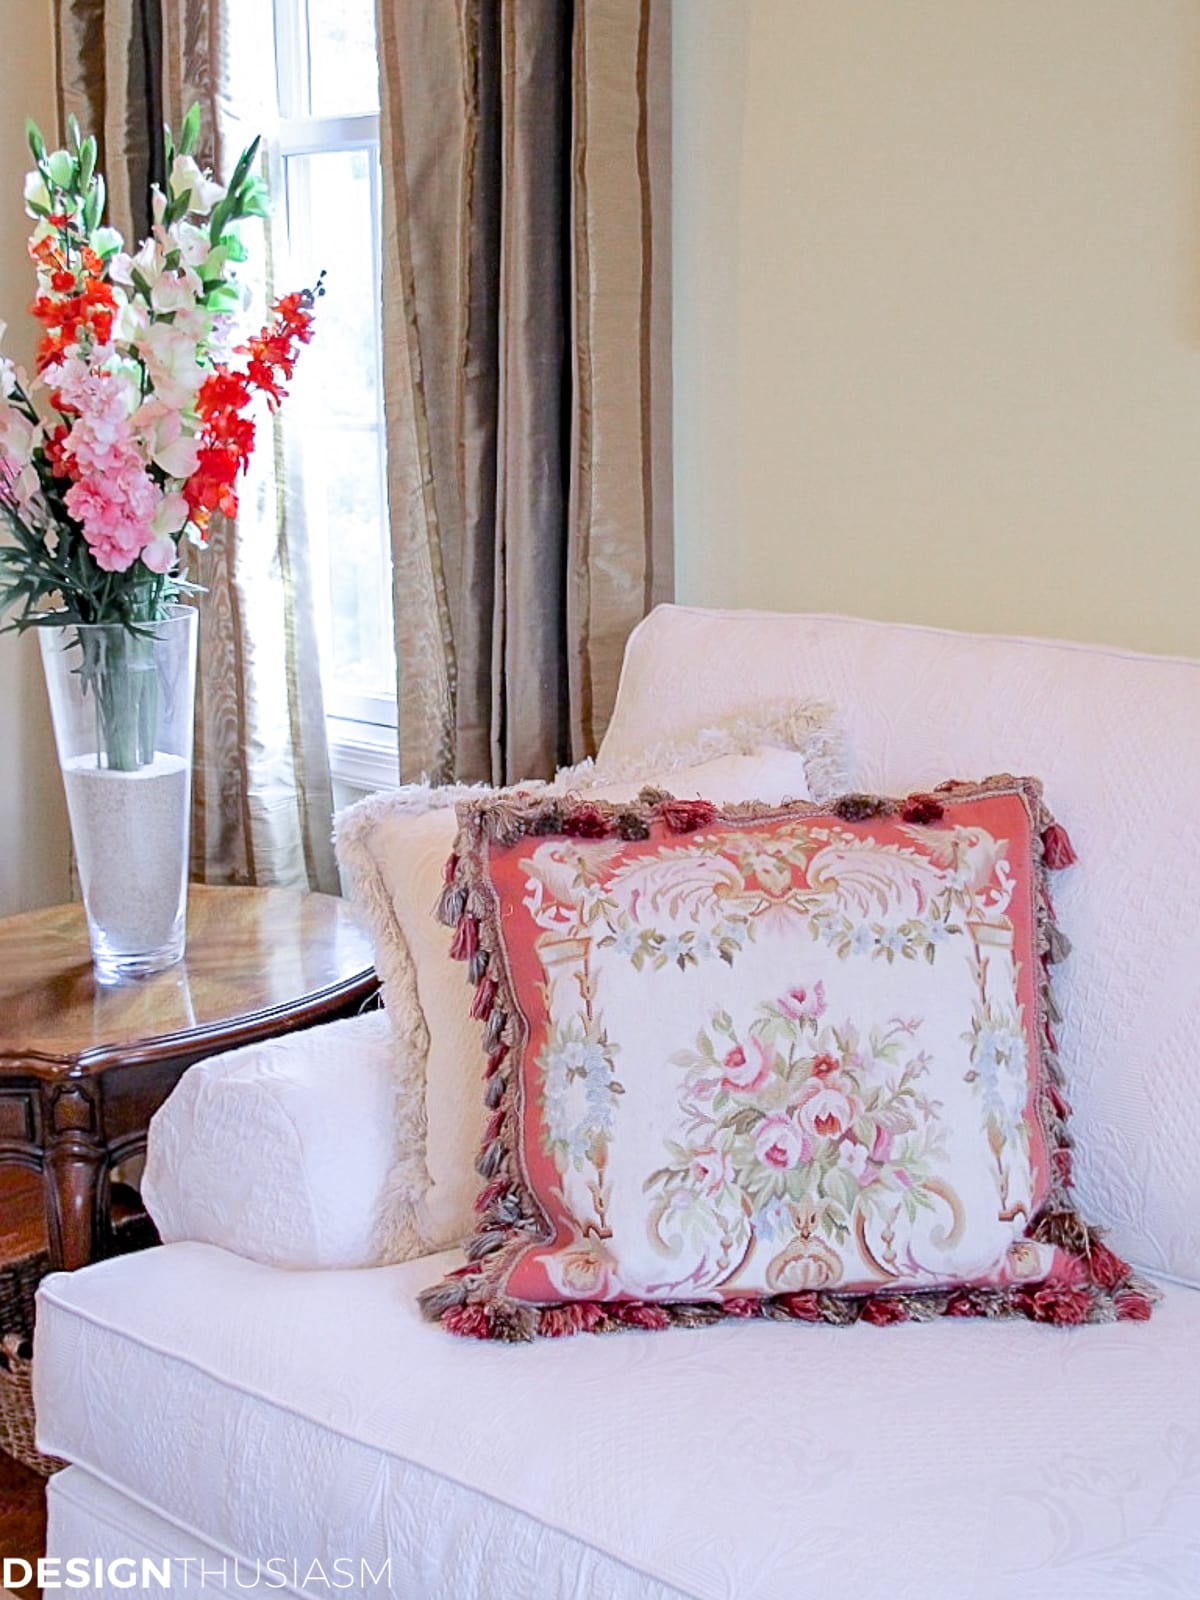 needlepoint pillow in the living room